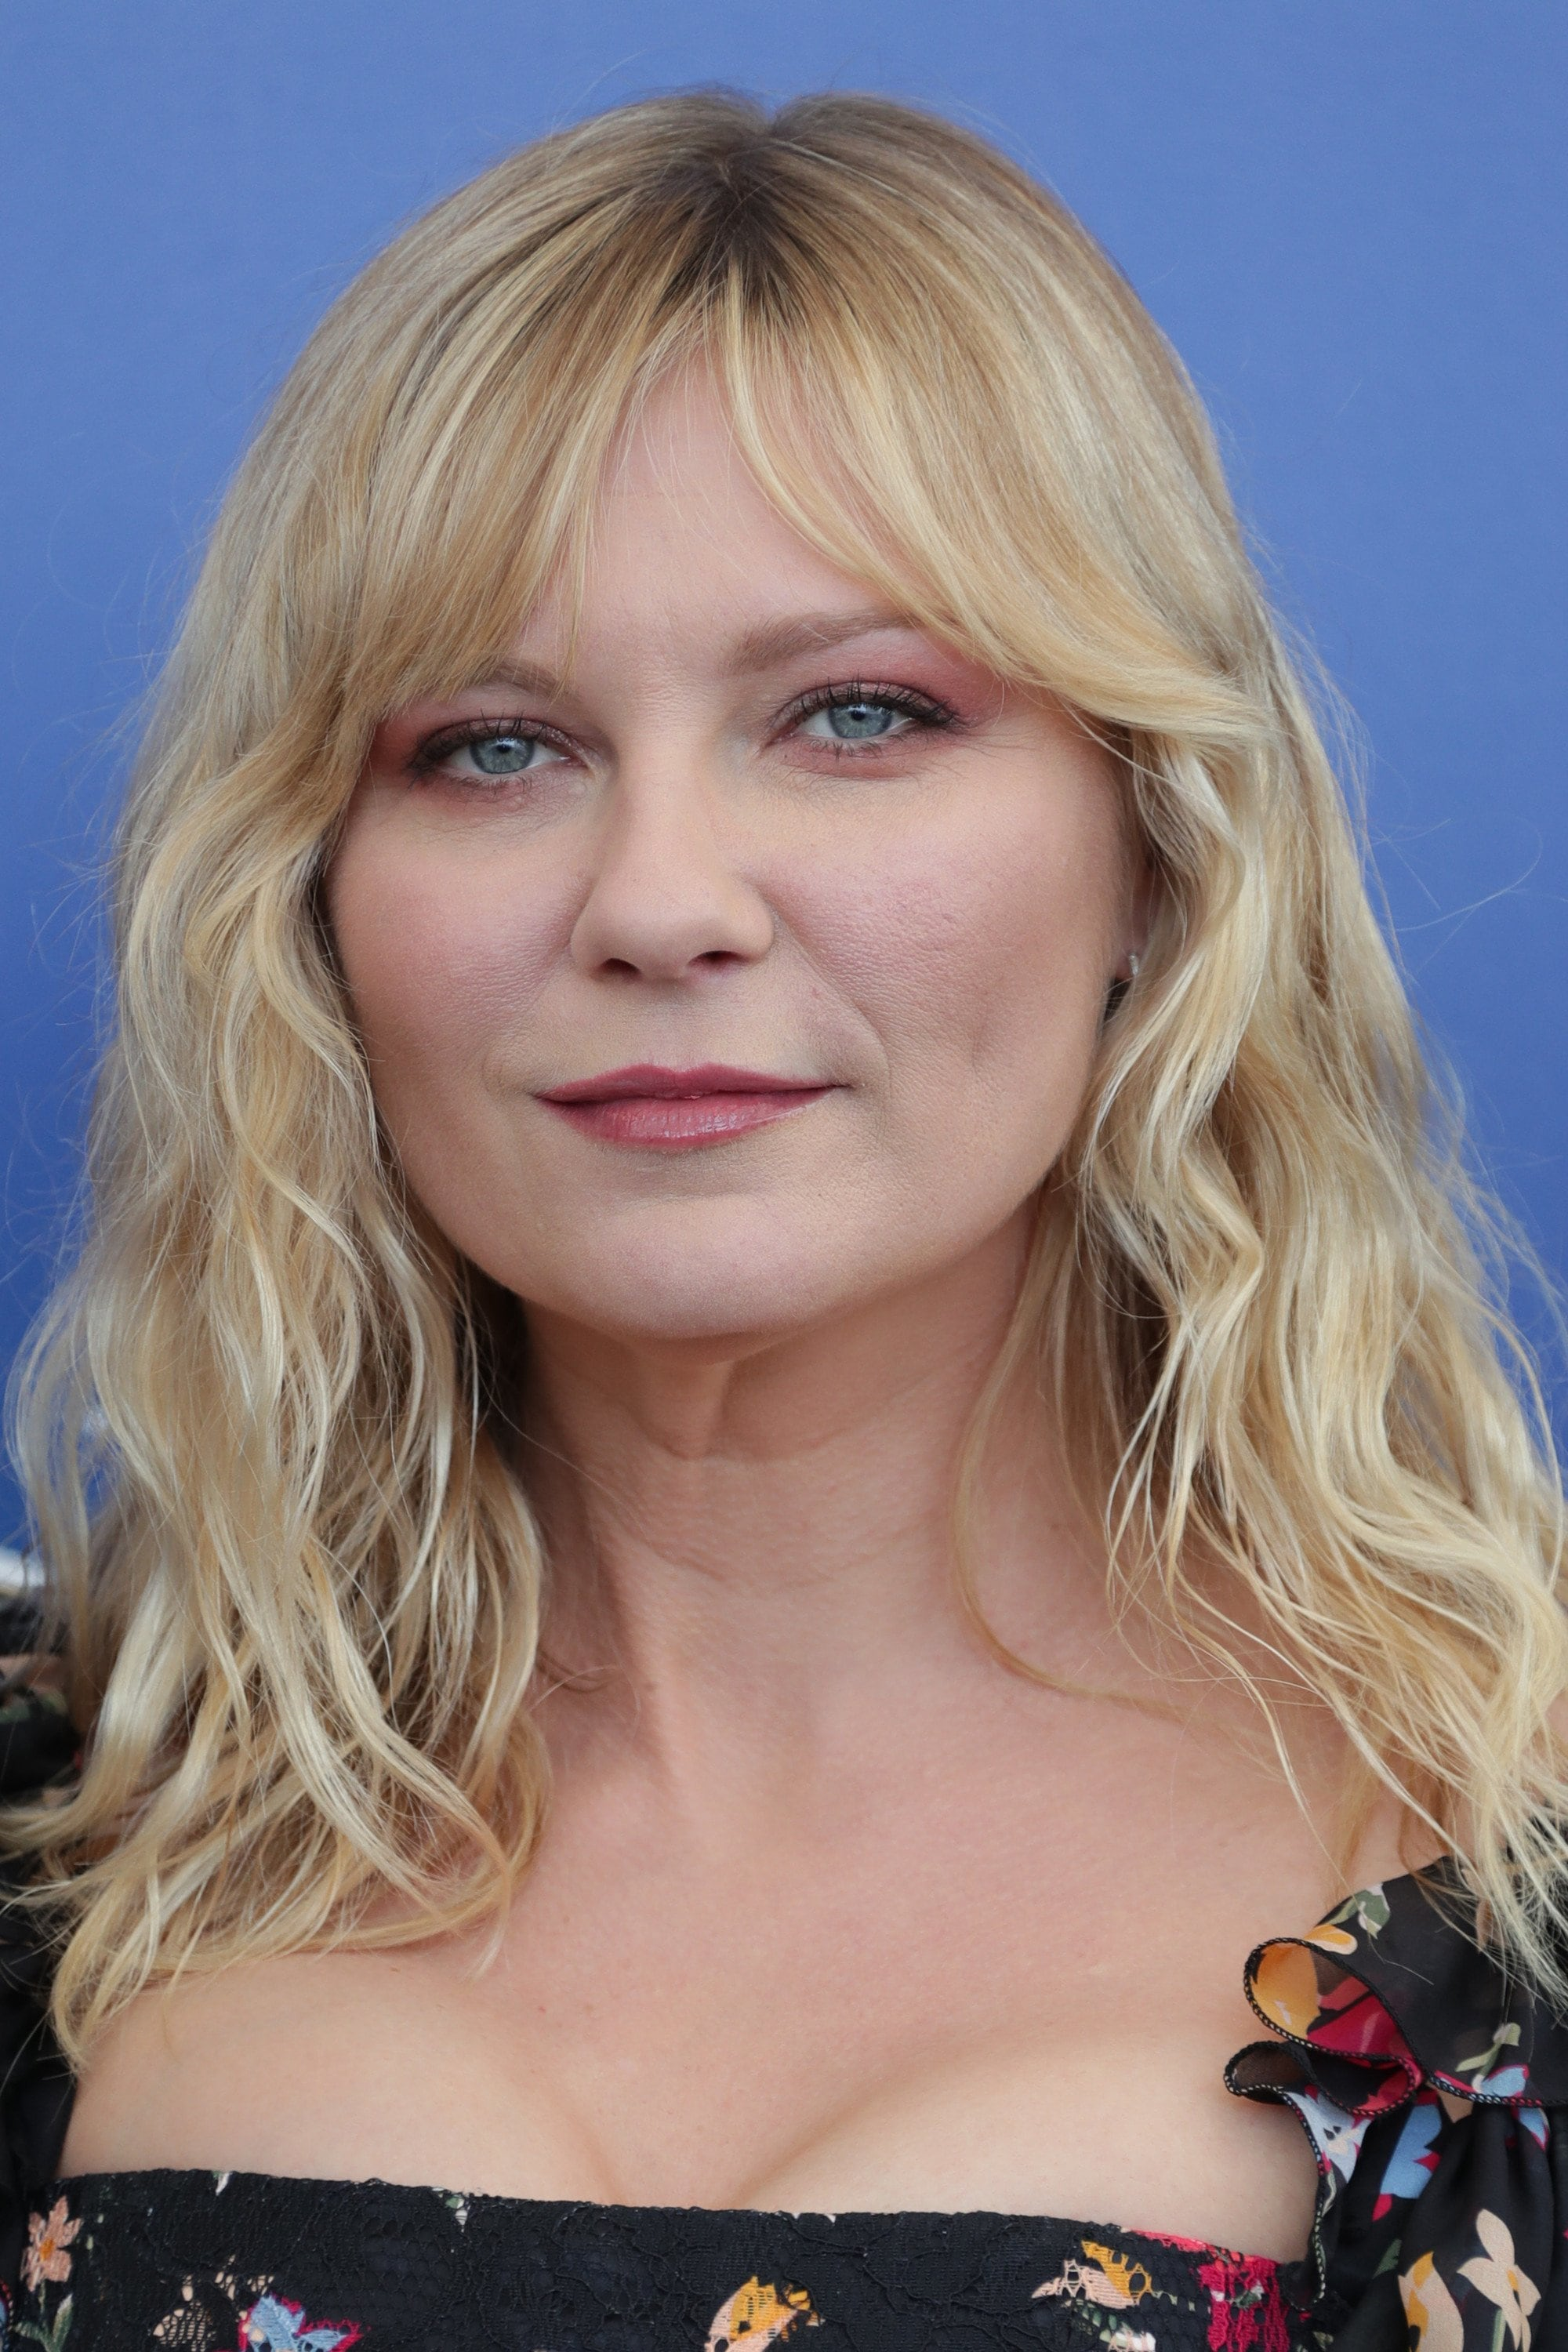 actress kirsten dunst with wavy blonde hair and parted bangs